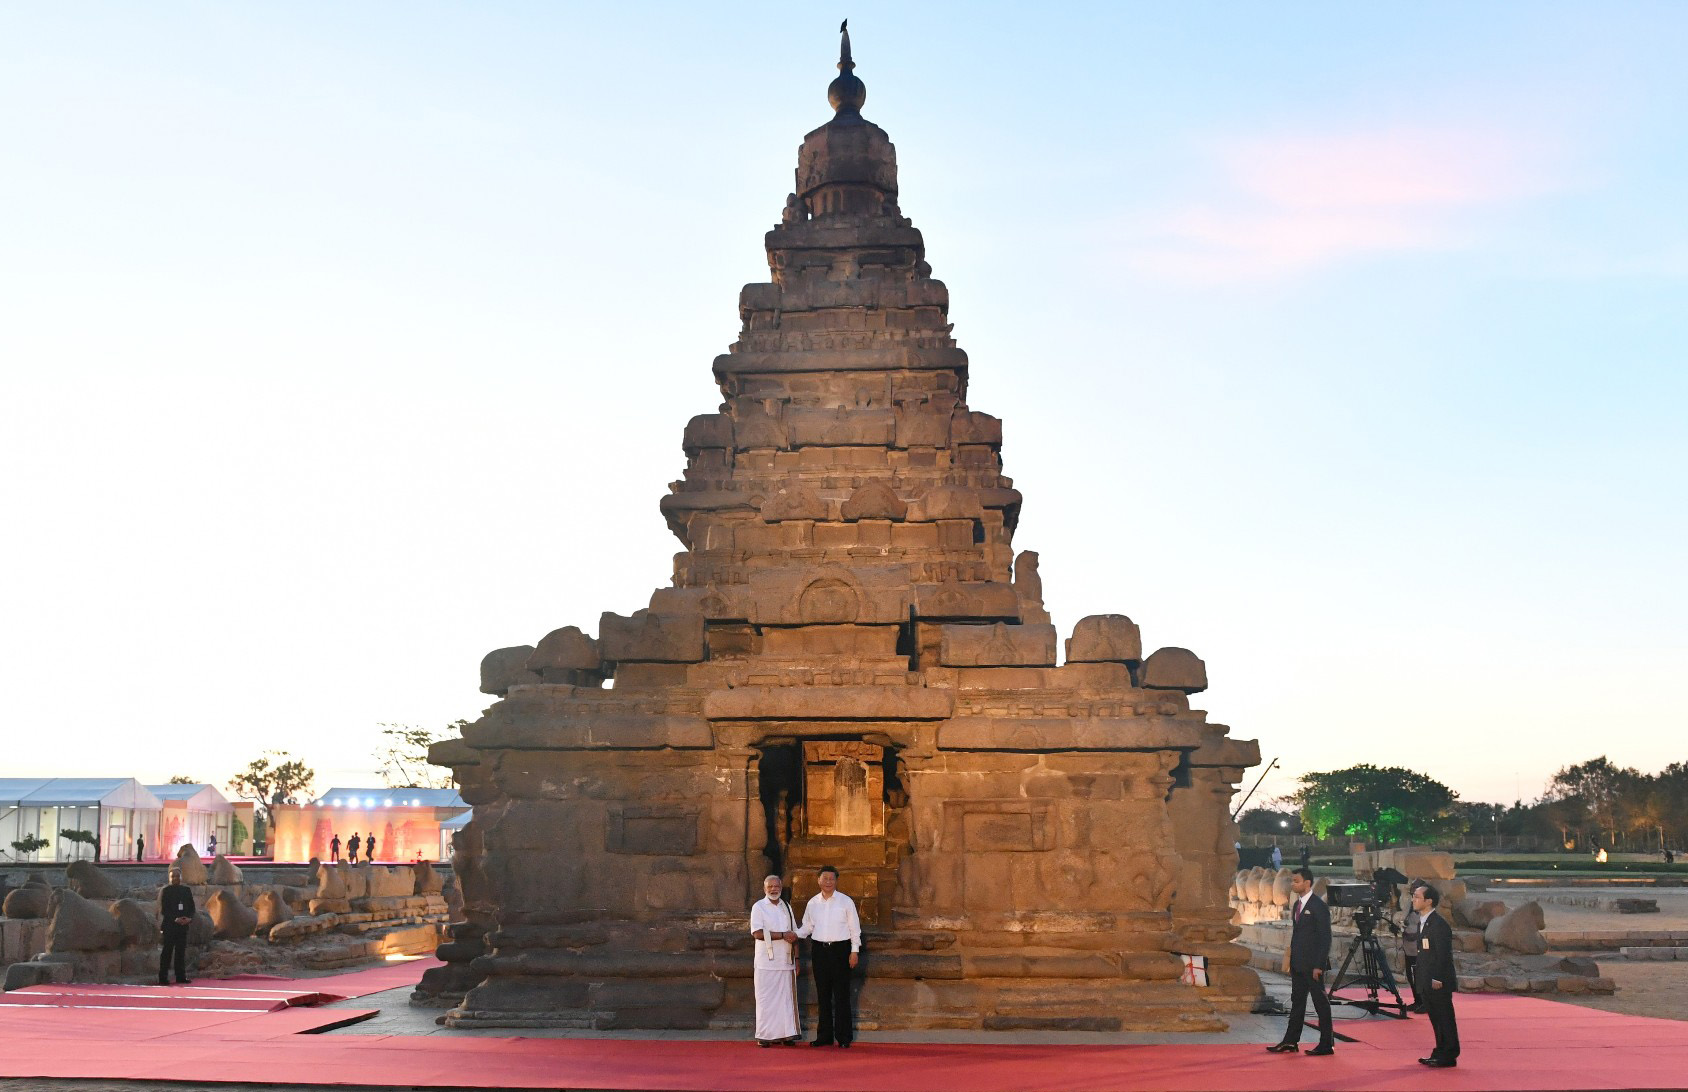 The Prime Minister, Shri Narendra Modi and the President of the People's Republic of China, Mr. Xi Jinping visiting the Shore Temple Monuments, in Mamallapuram, Tamil Nadu on October 11, 2019.